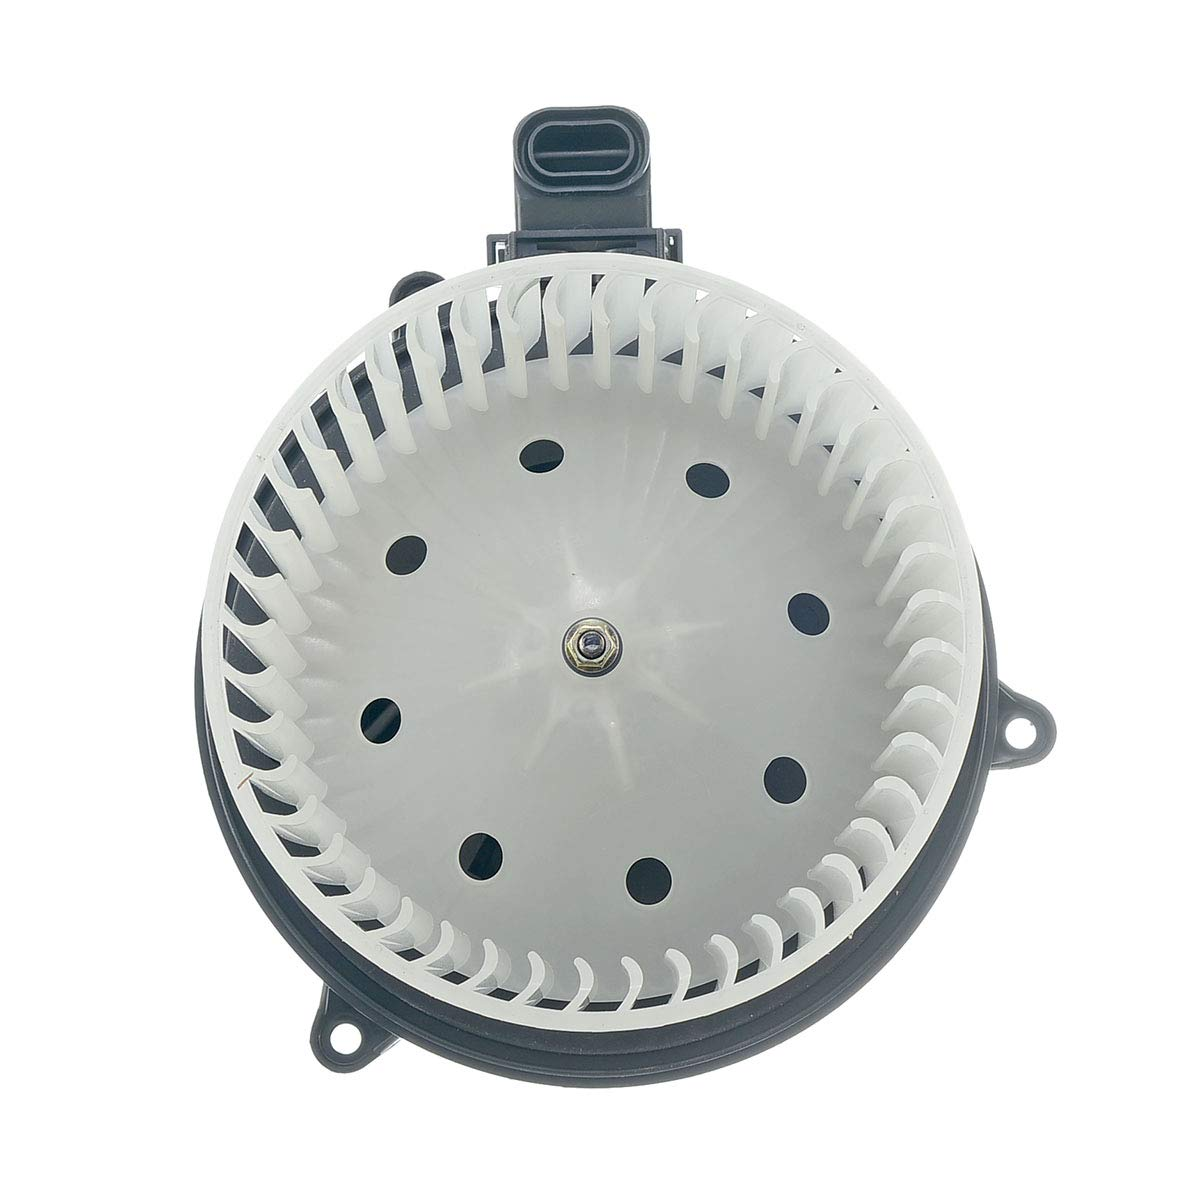 A-Premium Heater Blower Motor with Fan Cage for Ford Expedition 2009-2017 F-150 F-250 Lobo Lincoln Navigator